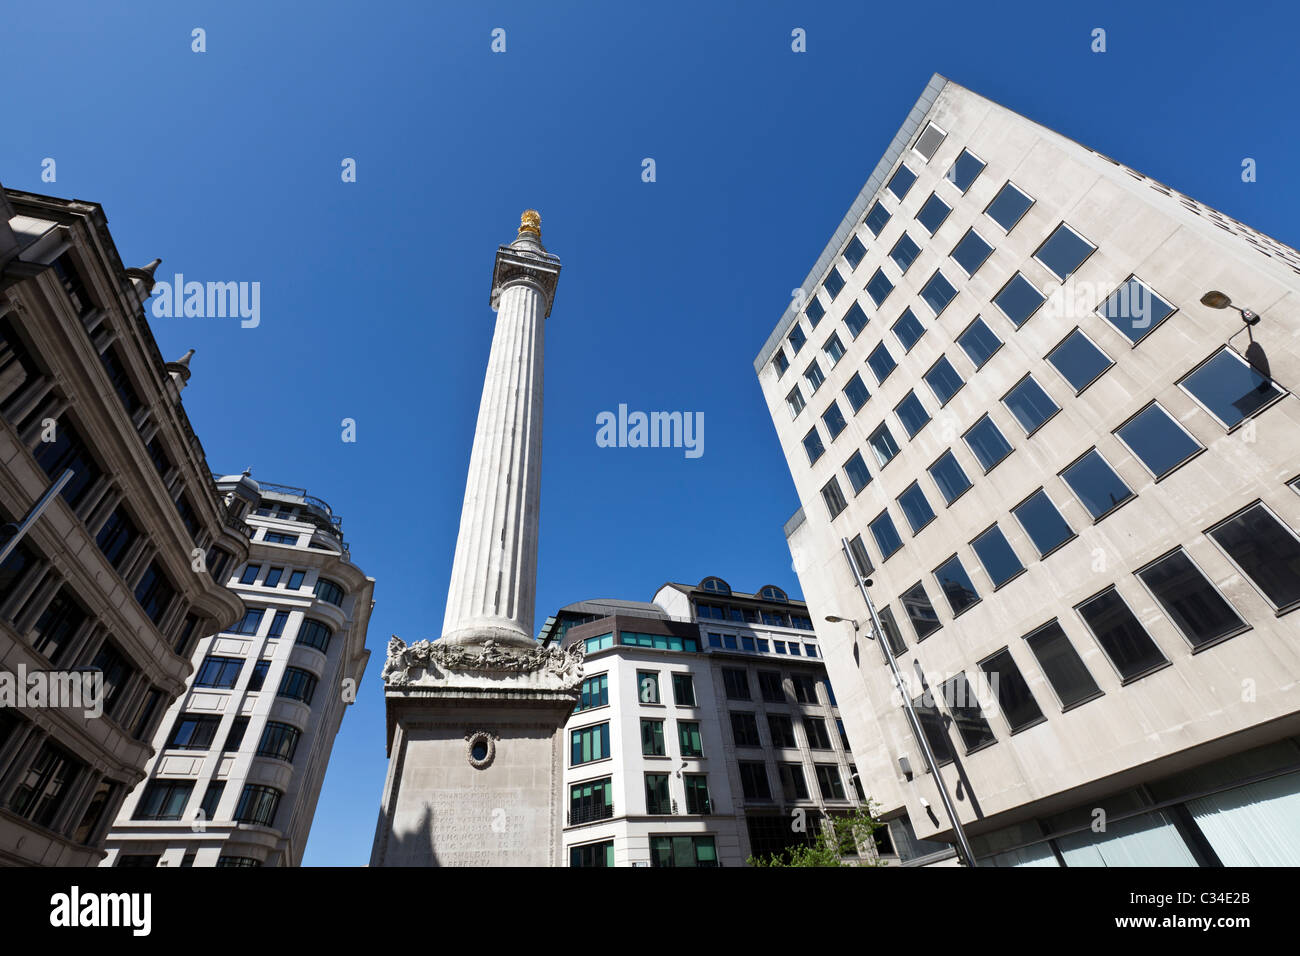 The Monument to the Great Fire of London - Stock Image